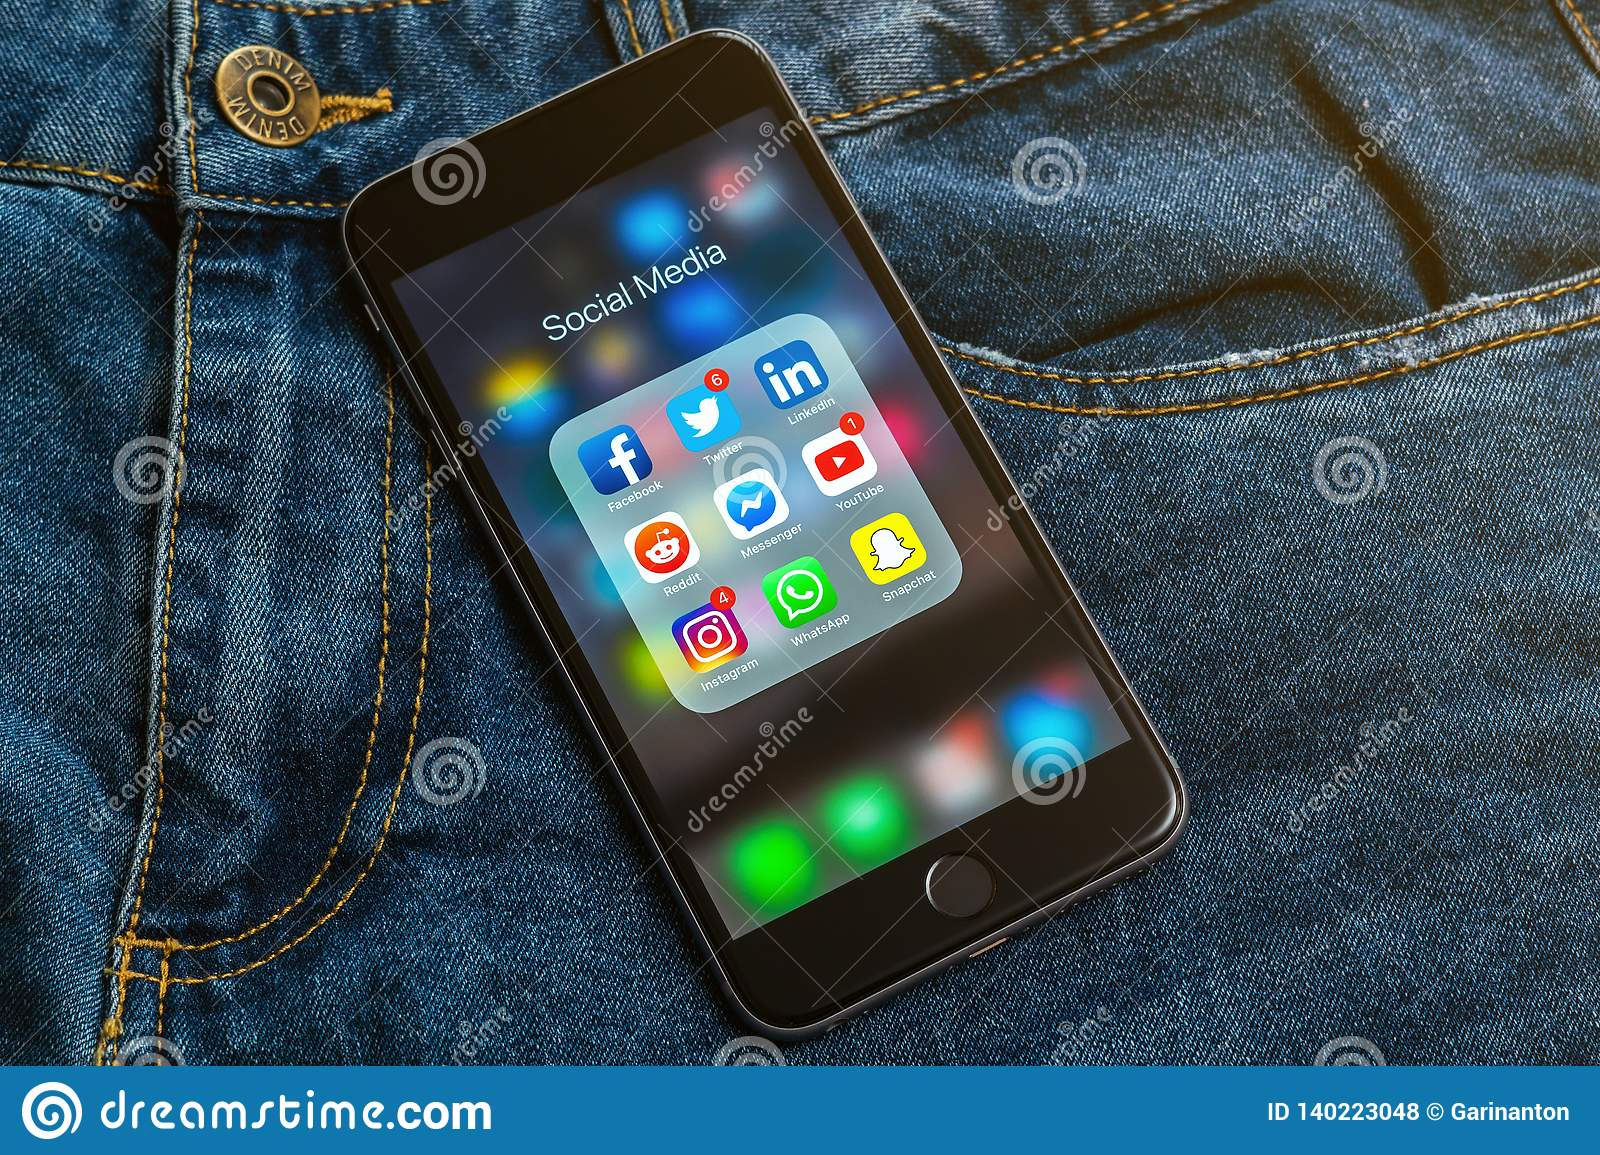 IPhone with icons of social media: instagram, youtube, reddit, facebook, twitter, snapchat, whatsapp applications on screen